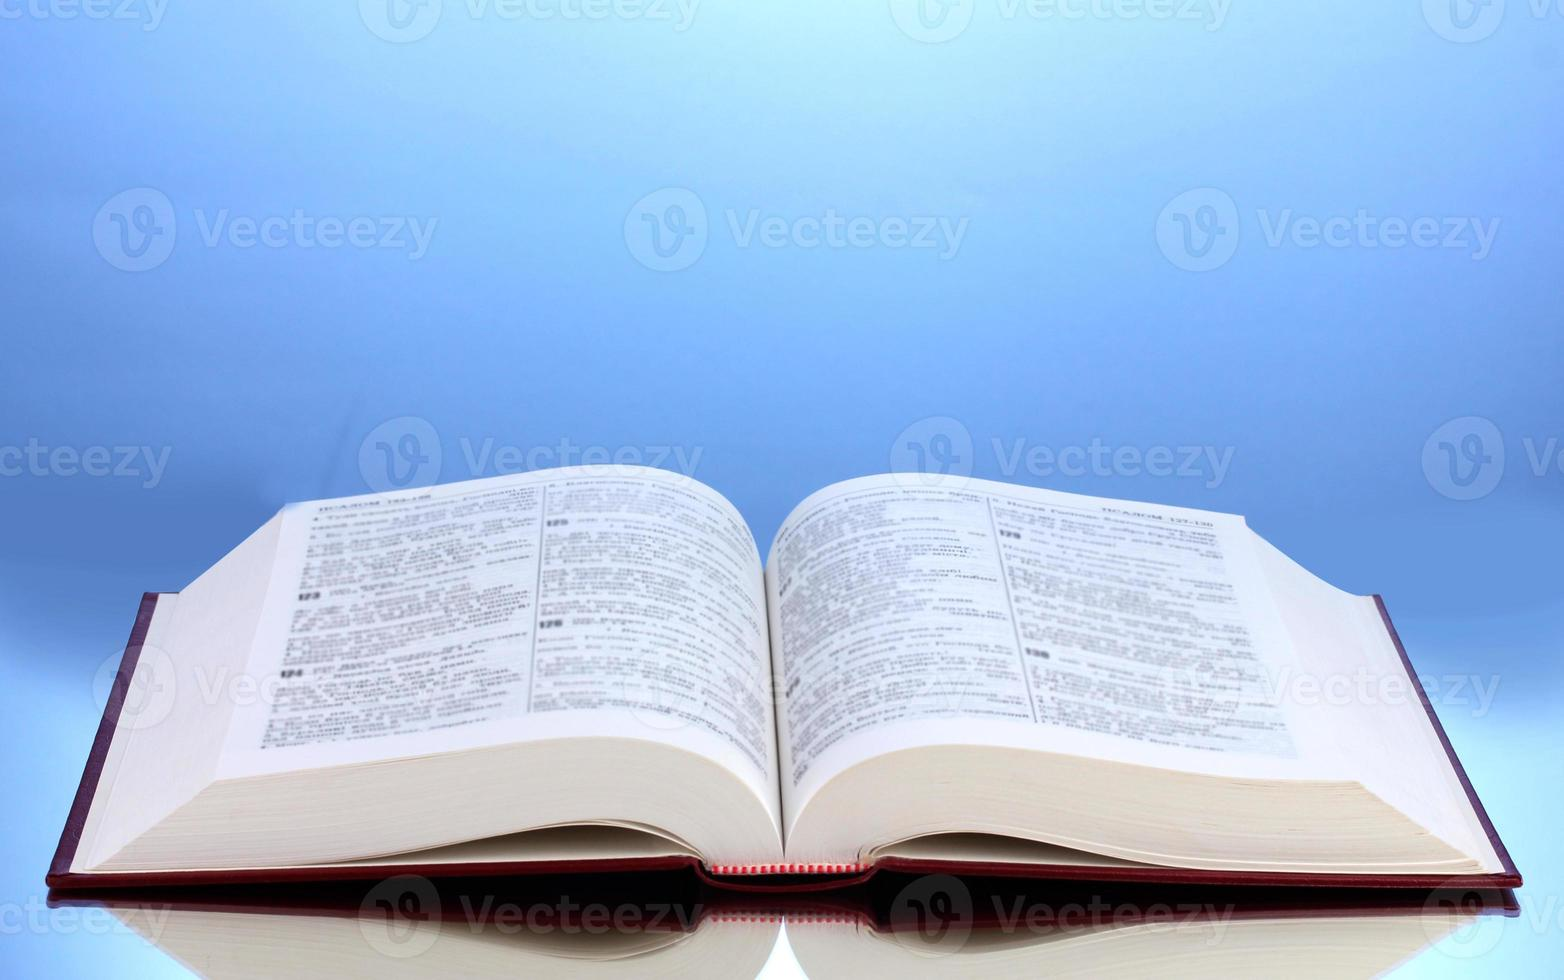 Open book on reflective surface of table on blue background photo